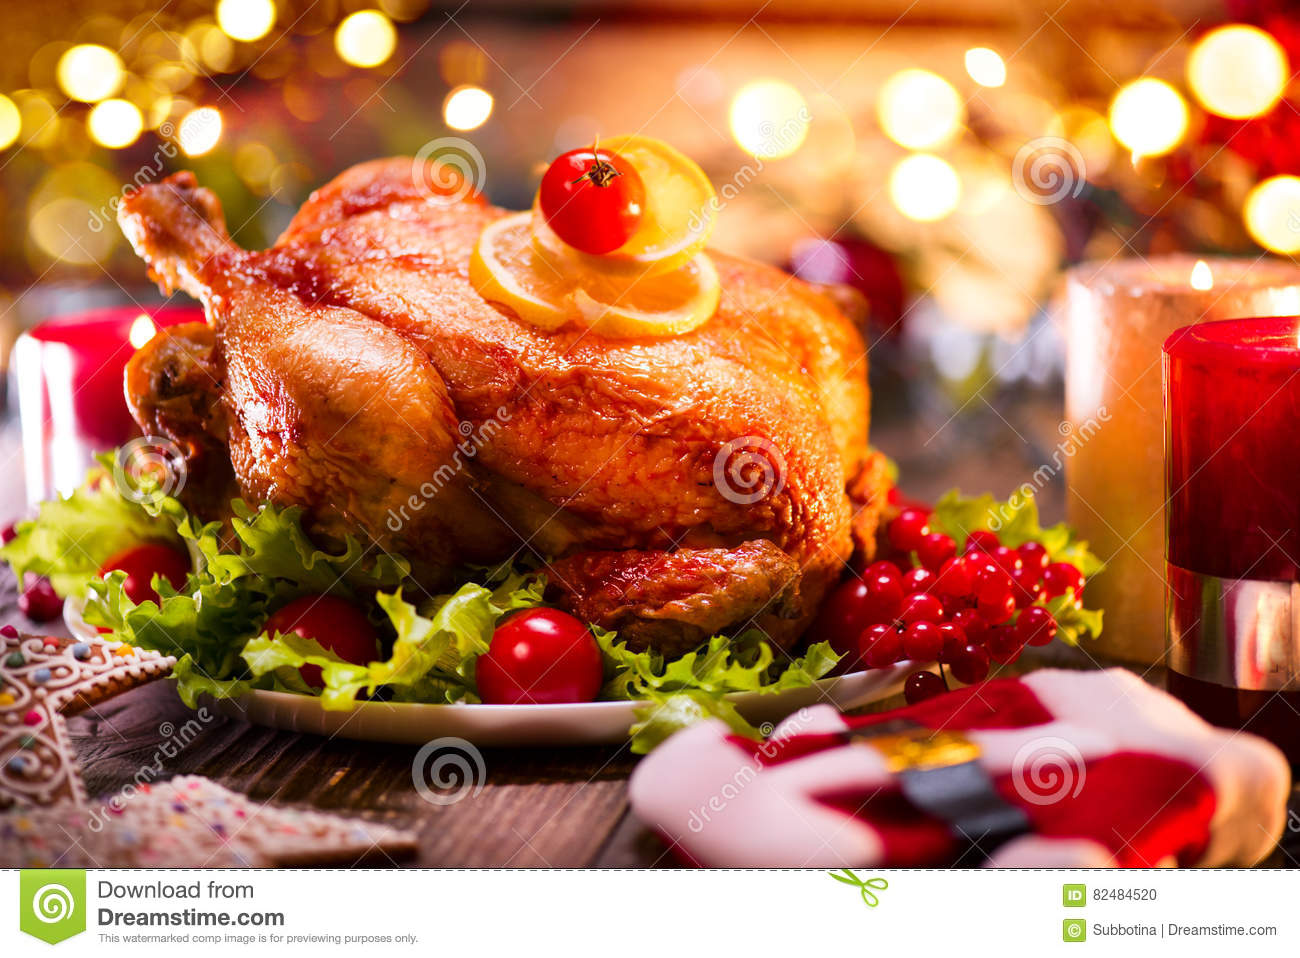 Christmas family dinner. Christmas holiday decorated table with turkey